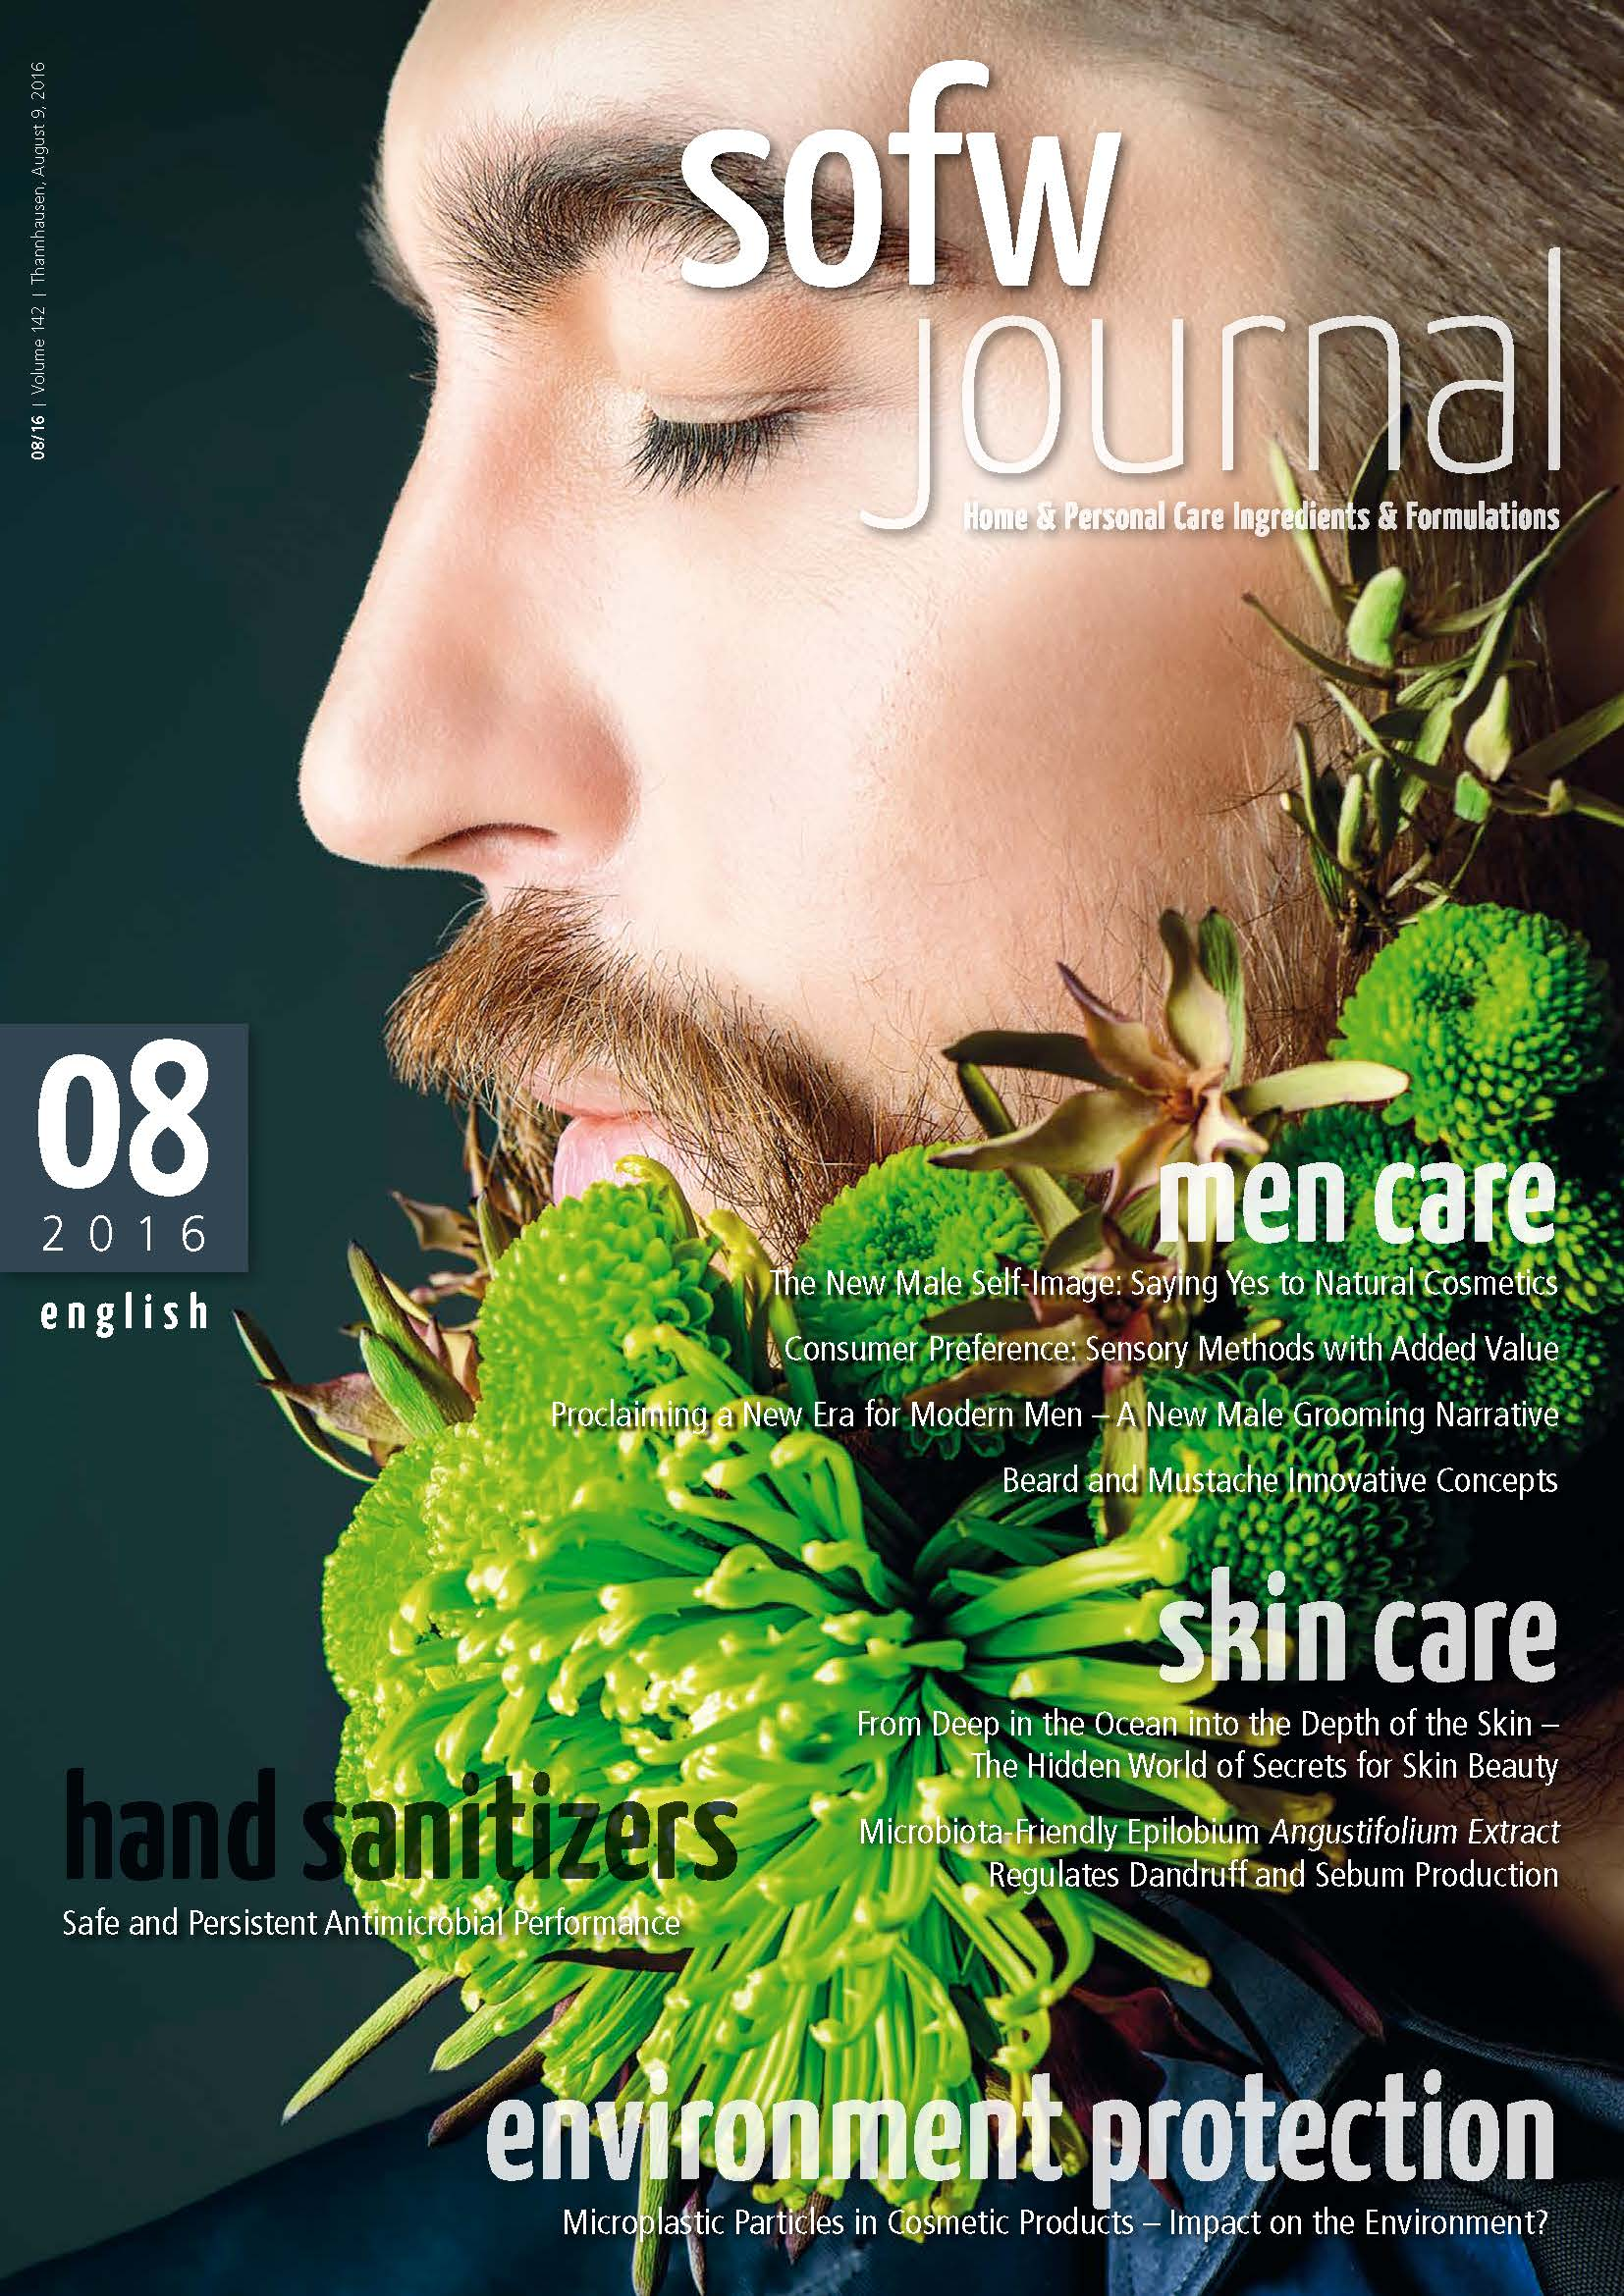 sofwjournal_en_2016_08_cover_2018703389